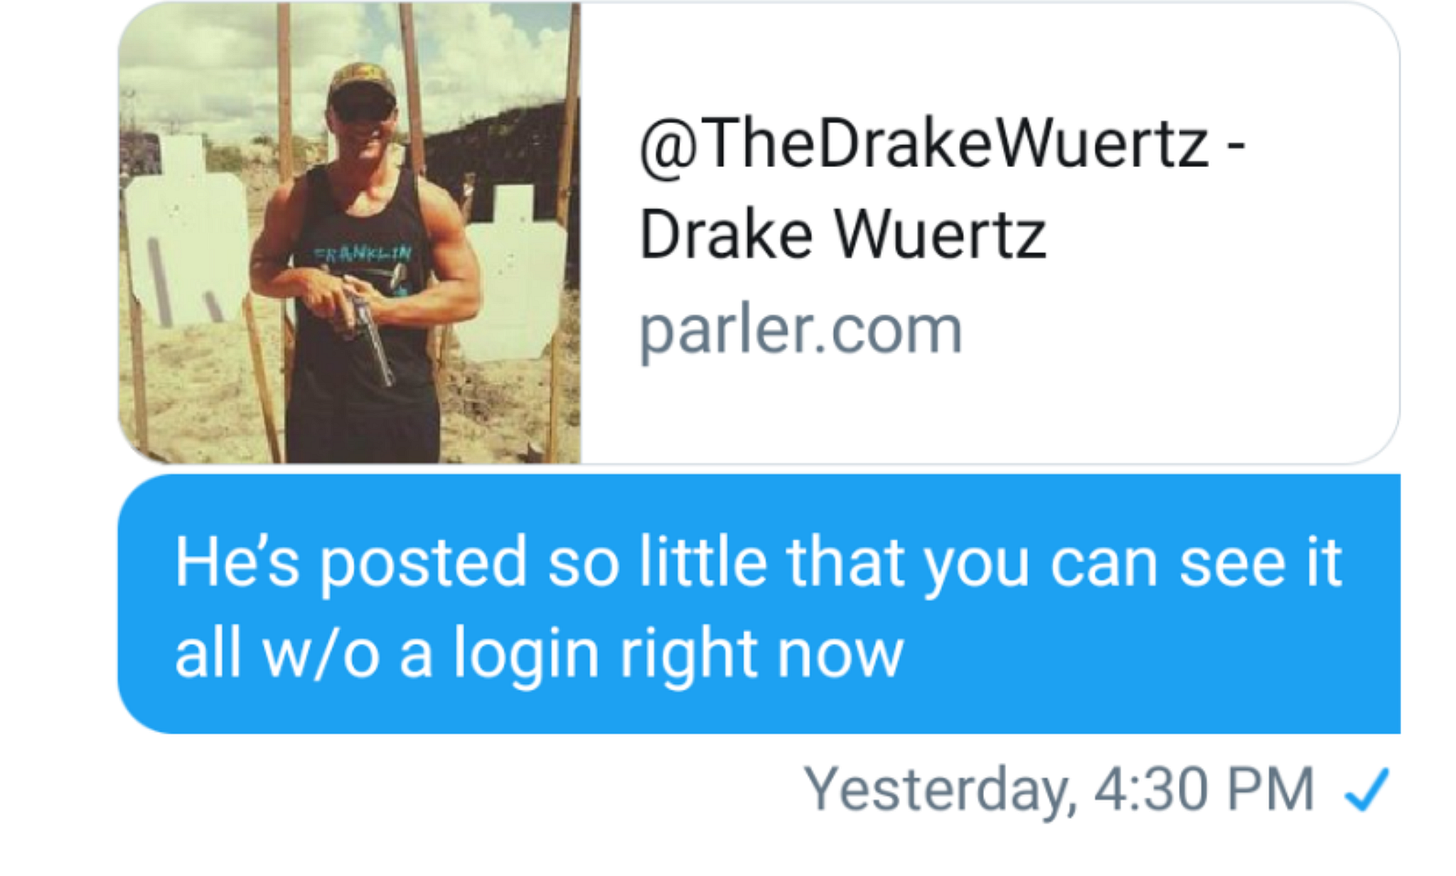 The only record I have at the moment of the @TheDrakeWuertz account on Parler, which disappeared within a day of being created. (Image: Twitter DM screenshot.)